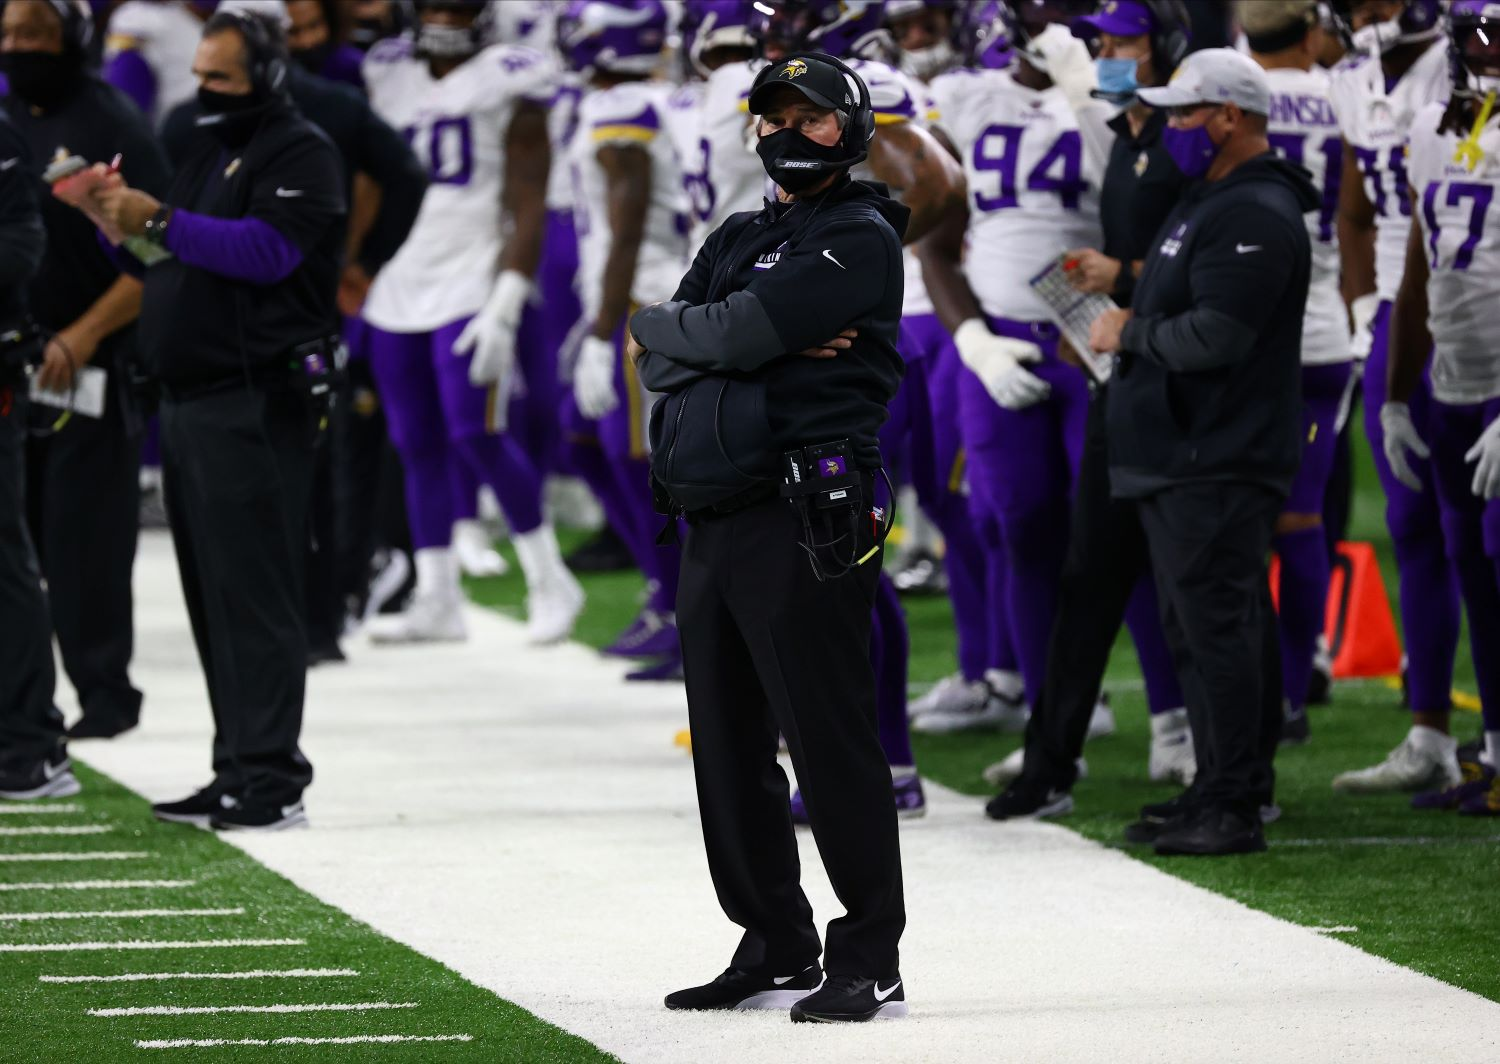 Mike Zimmer just suffered a massive setback to saving his job with the Minnesota Vikings with the retirement of offensive coordinator Gary Kubiak.